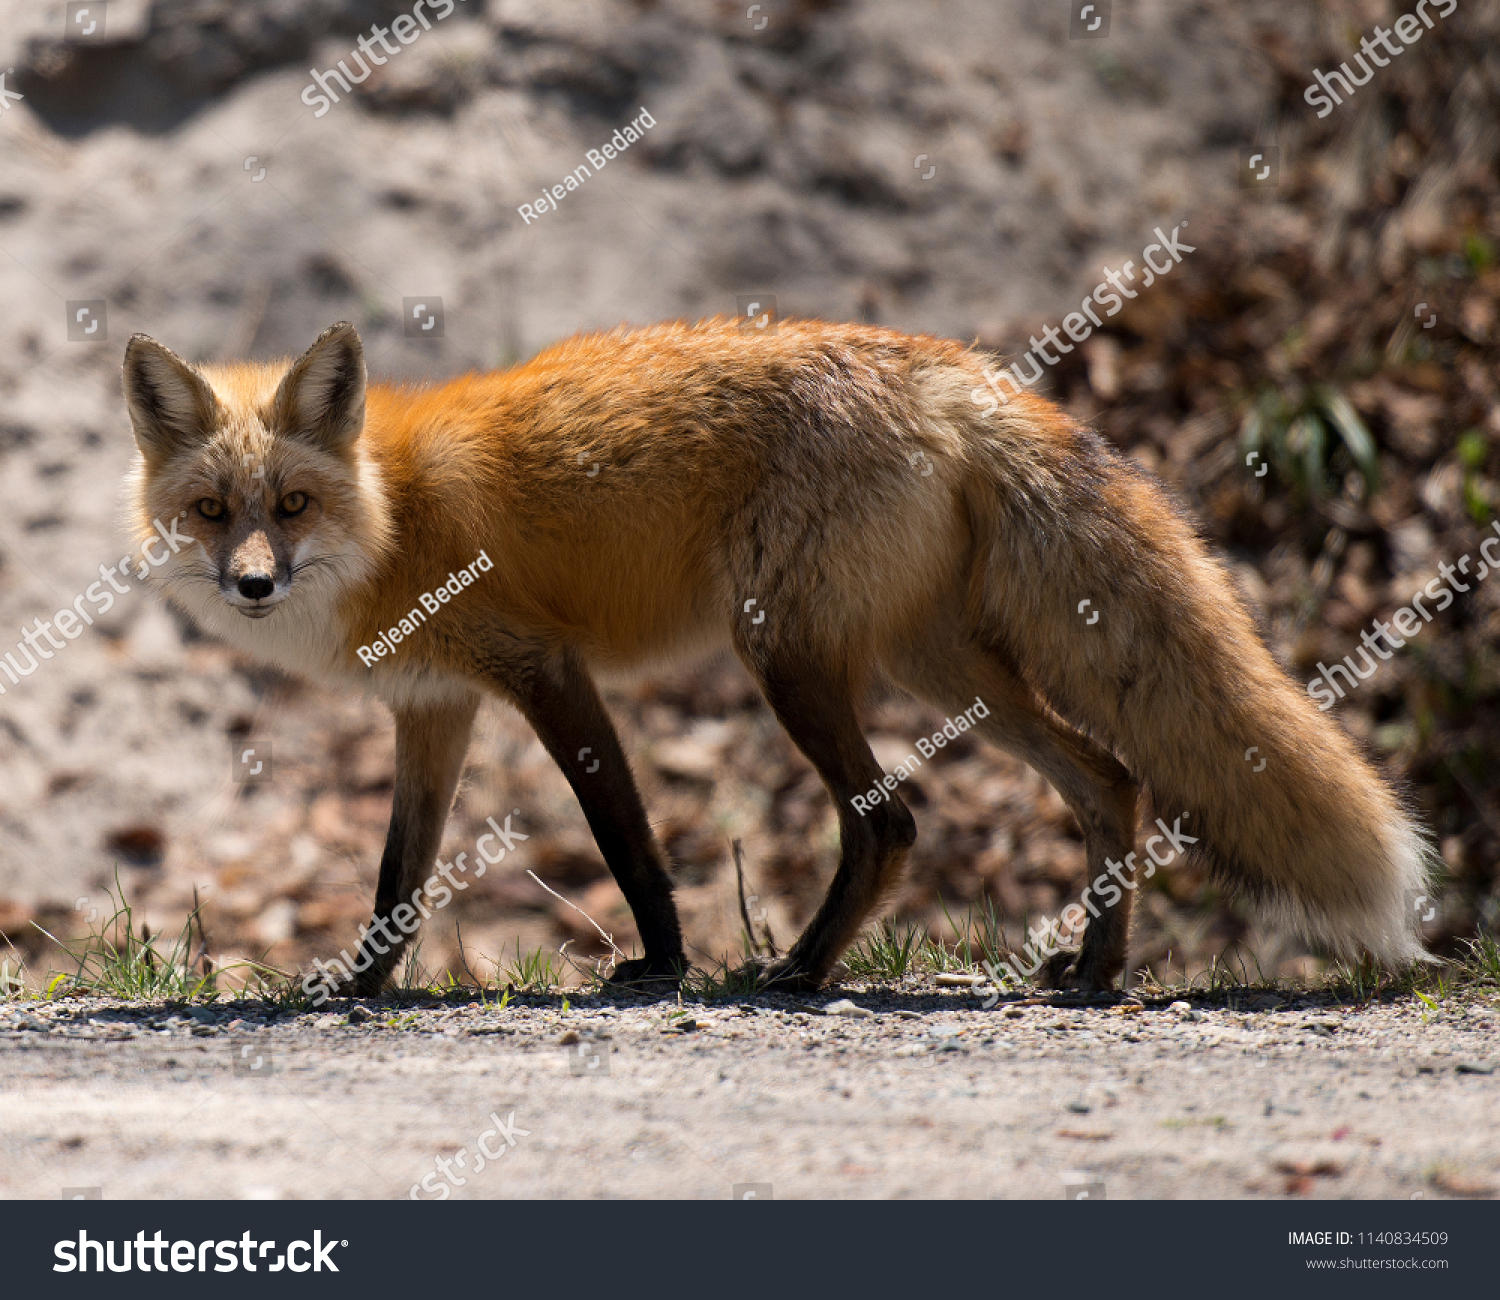 Red fox mother with her kit foxes